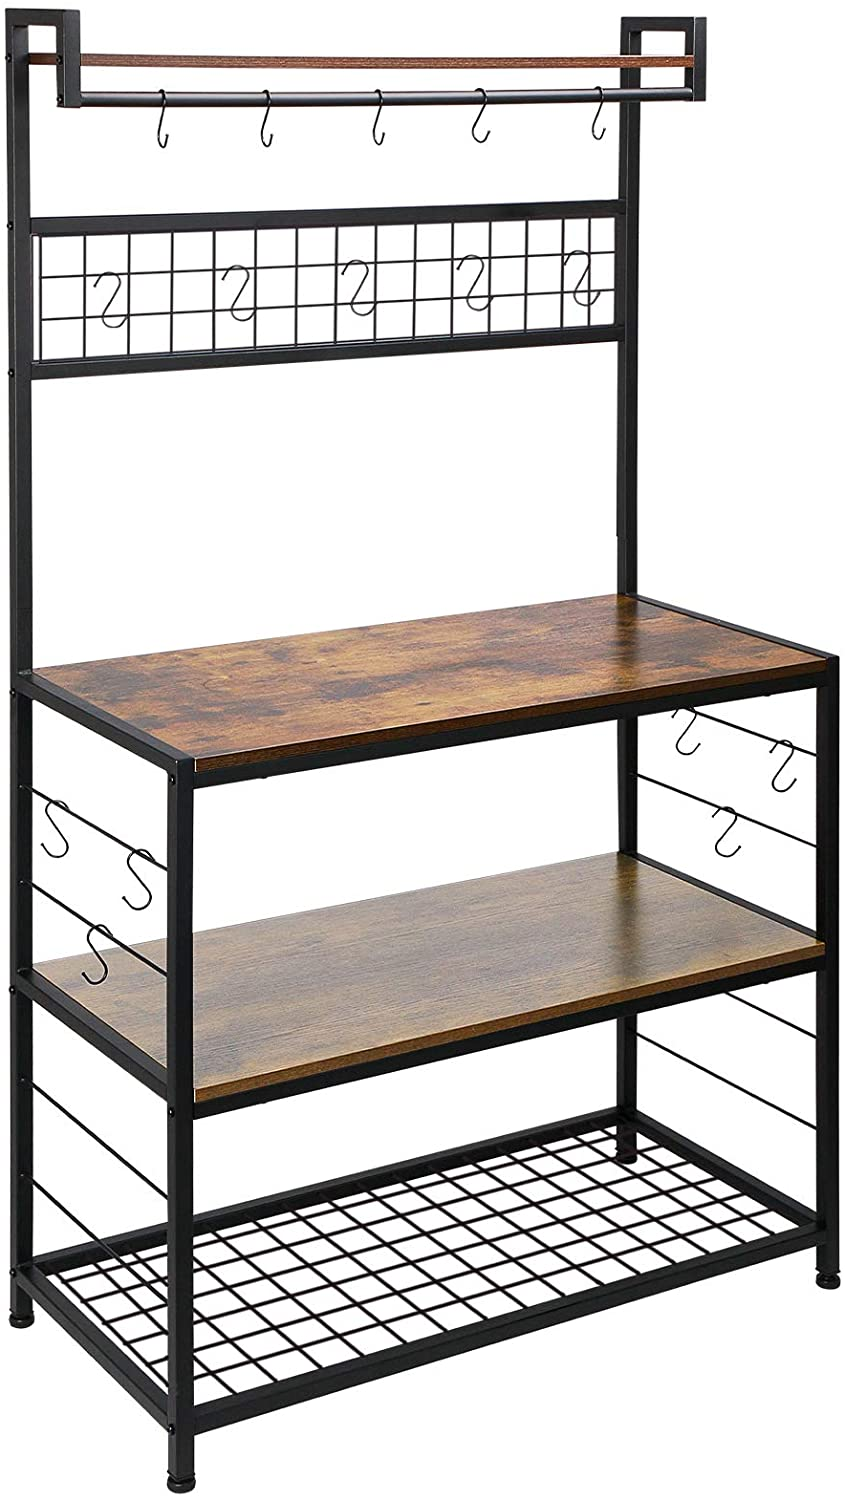 HOMEKOKO Kitchen Bakers Rack with Some reservation Manufacturer direct delivery Hooks Microwave for 16